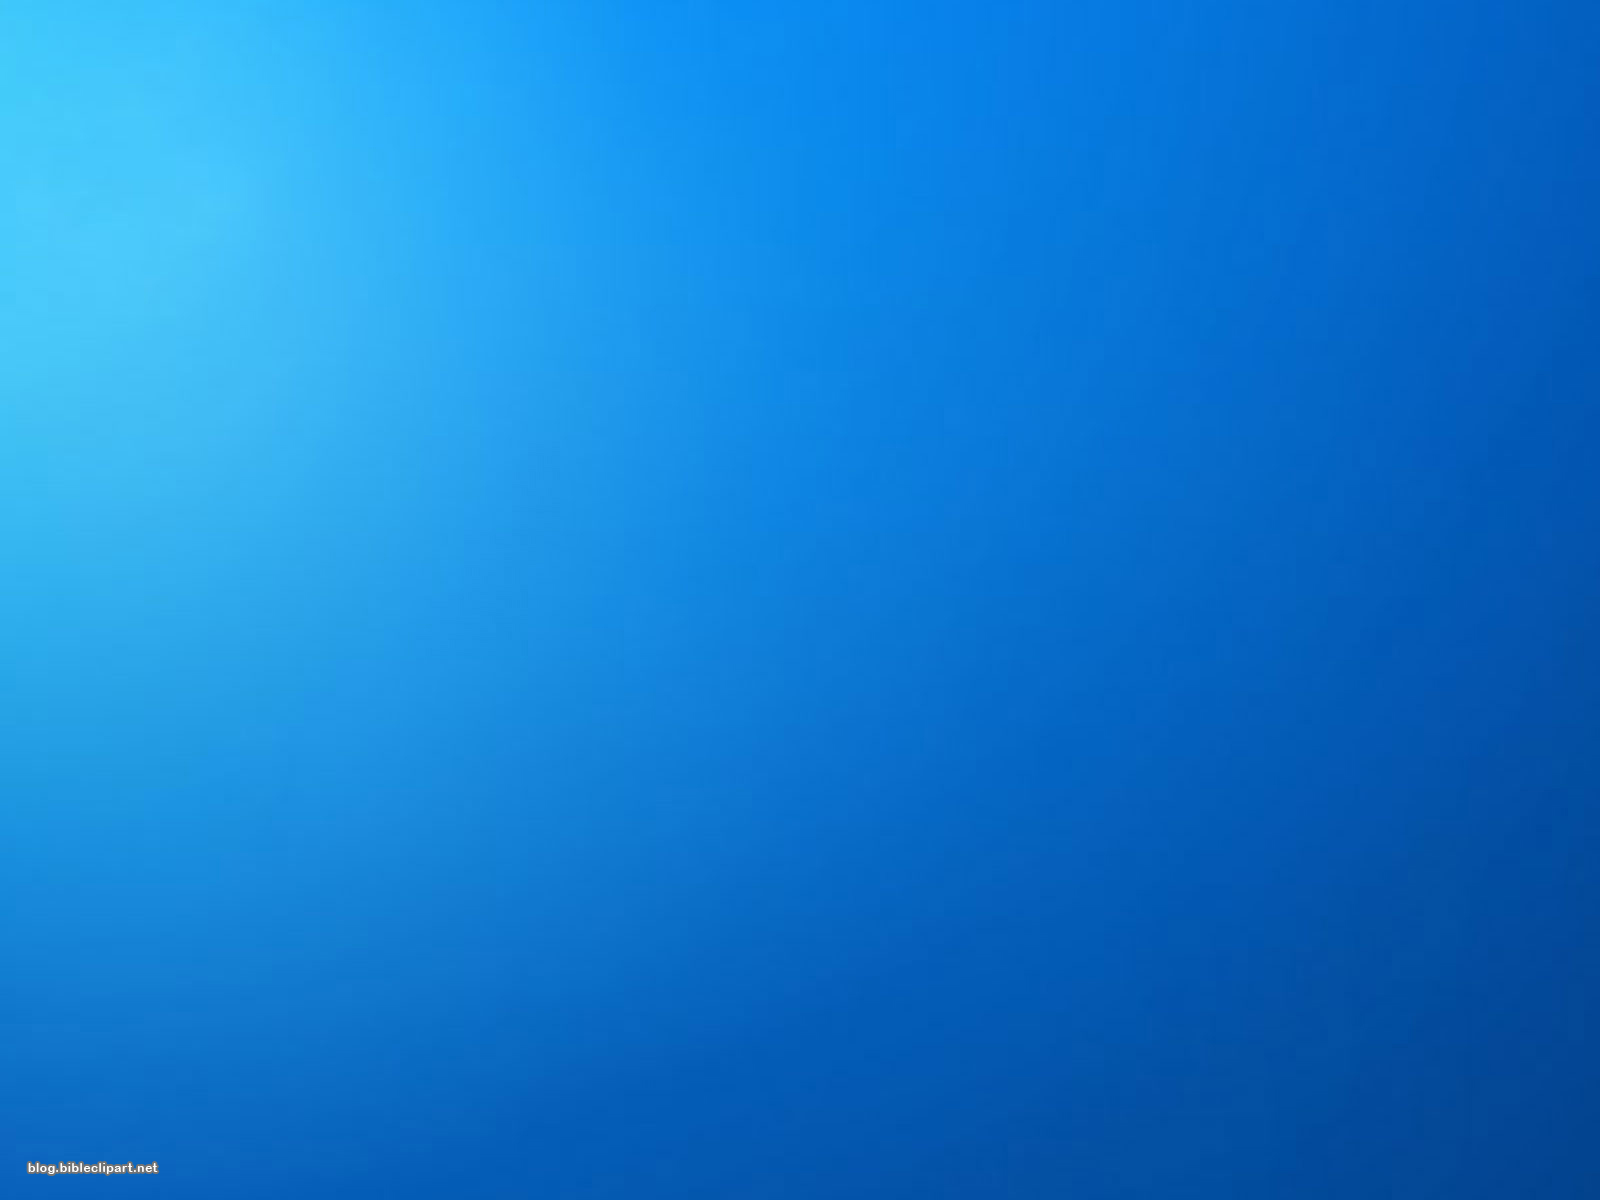 Minimalist Blue Background